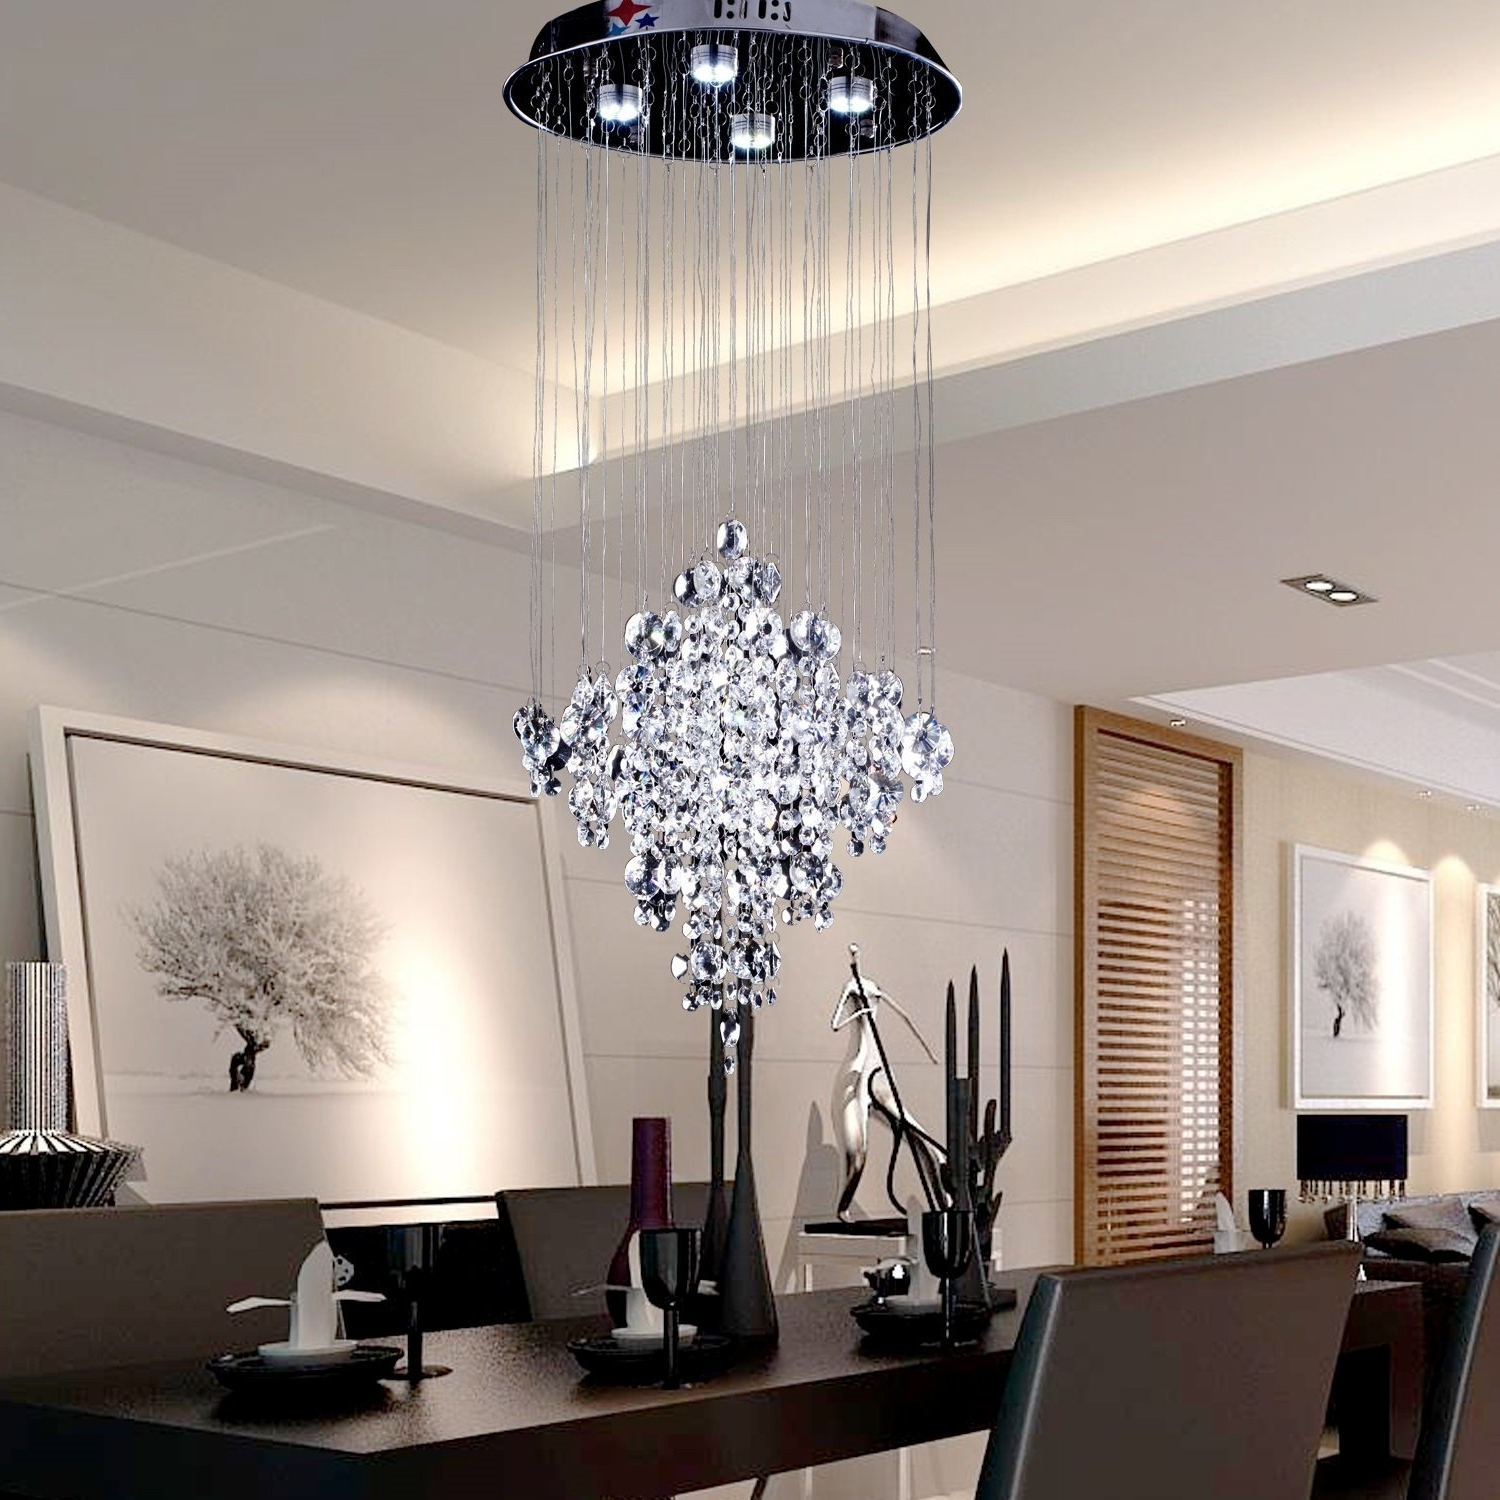 Chandeliers Design : Magnificent Nova Lighting Kobe Modern Intended For Well Known Large Chandeliers Modern (View 10 of 15)